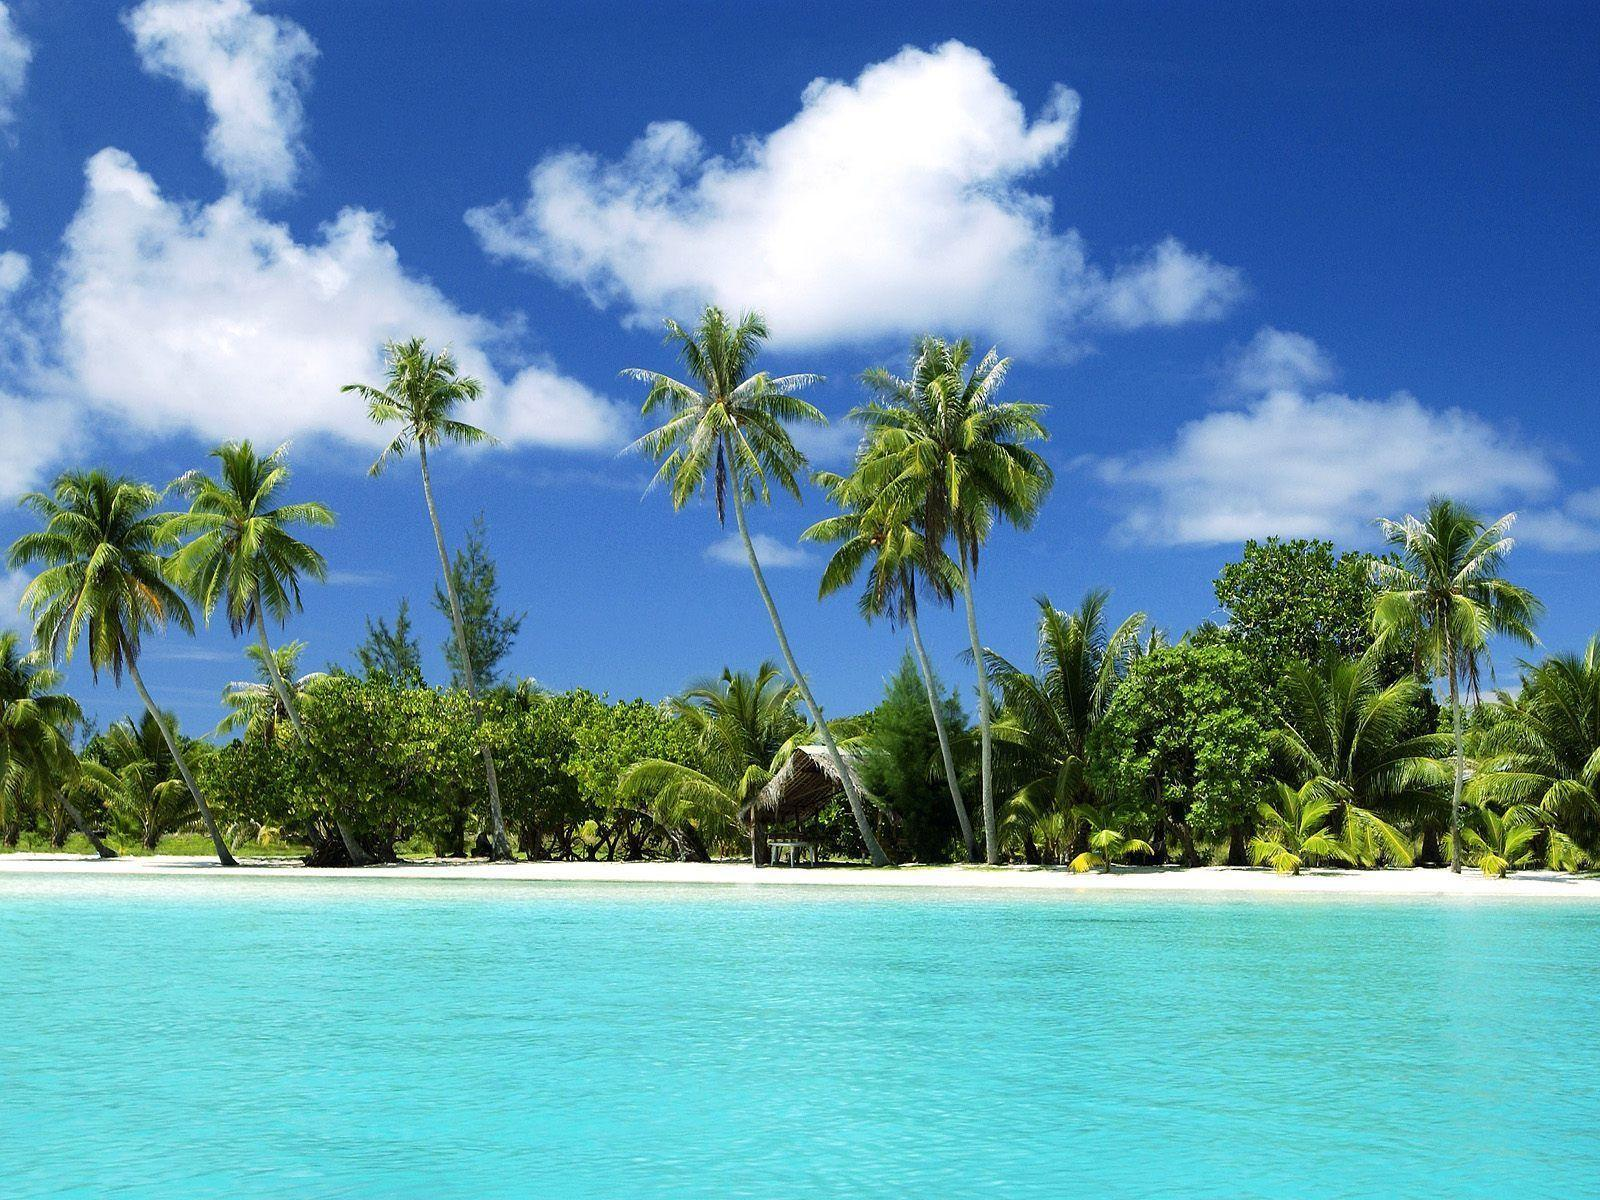 Tropical Beach Wallpapers Desktop Free Desktop 8 HD Wallpapers